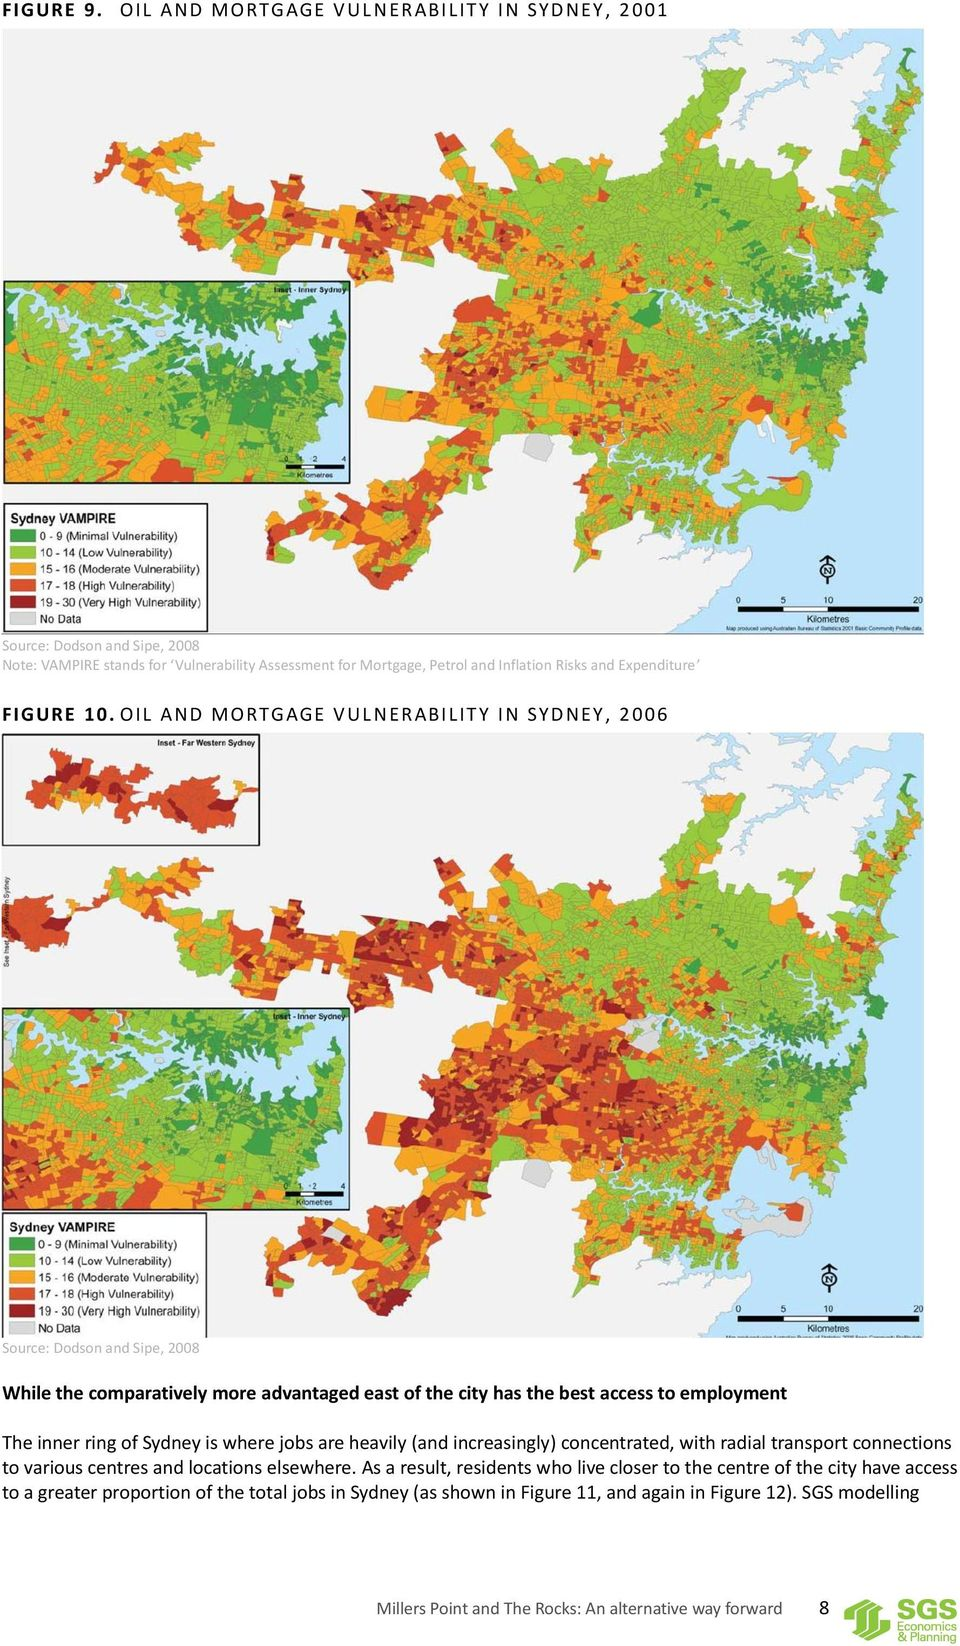 OIL AND MORTG AGE VUL NERABILITY IN SYDNEY, 2 00 6 Source: Dodson and Sipe, 2008 While the comparatively more advantaged east of the city has the best access to employment The inner ring of Sydney